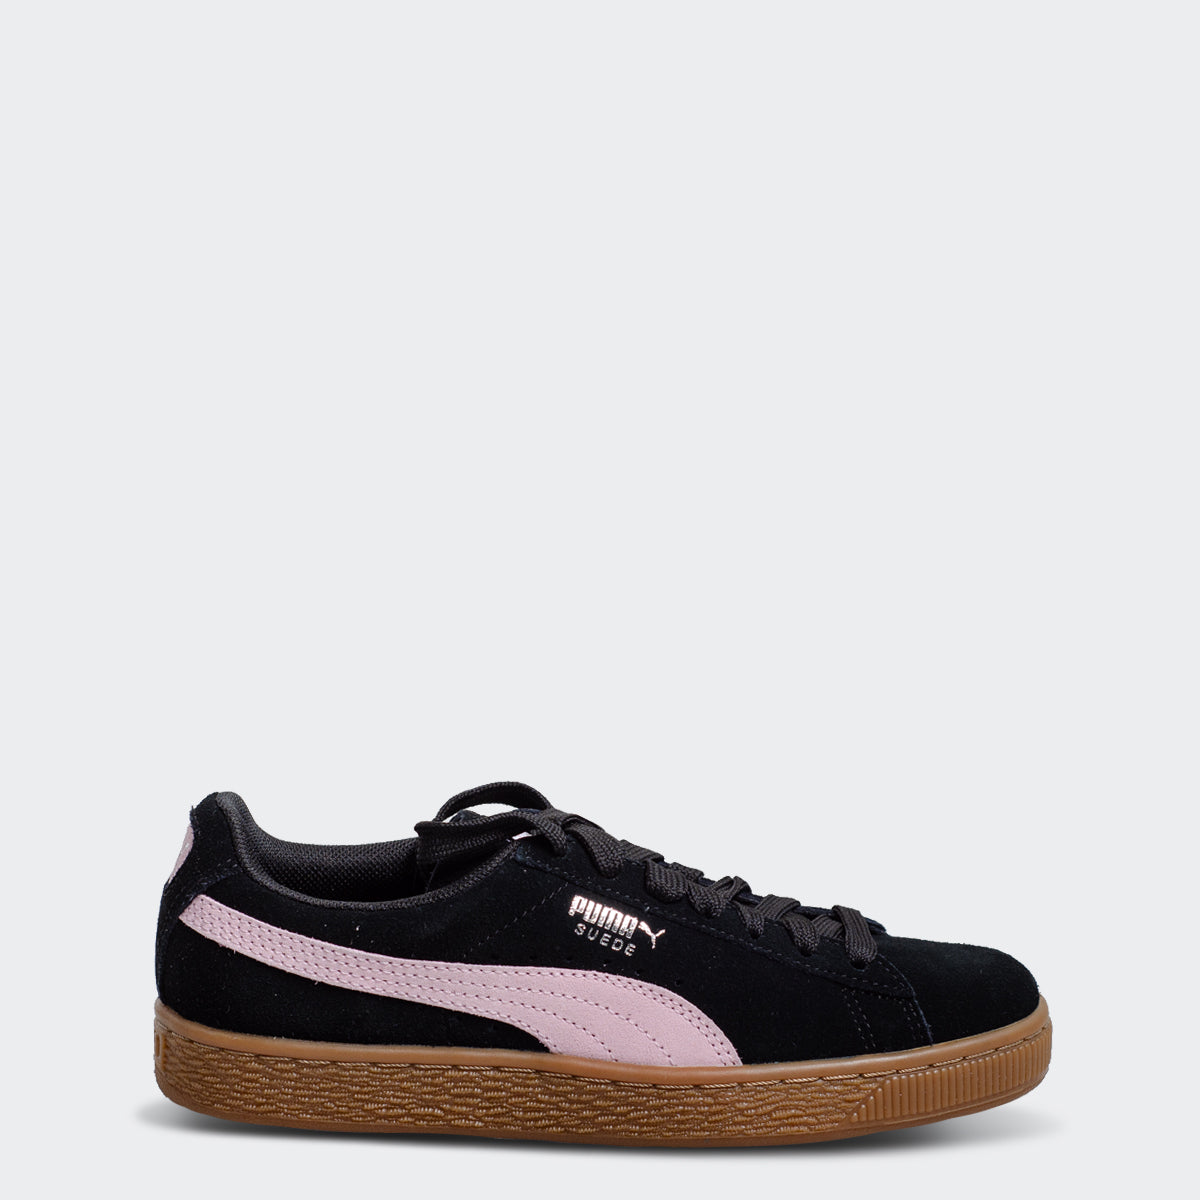 finest selection afc92 2c38e PUMA Suede Classic Sneakers Black Pink 35546286   Chicago ...